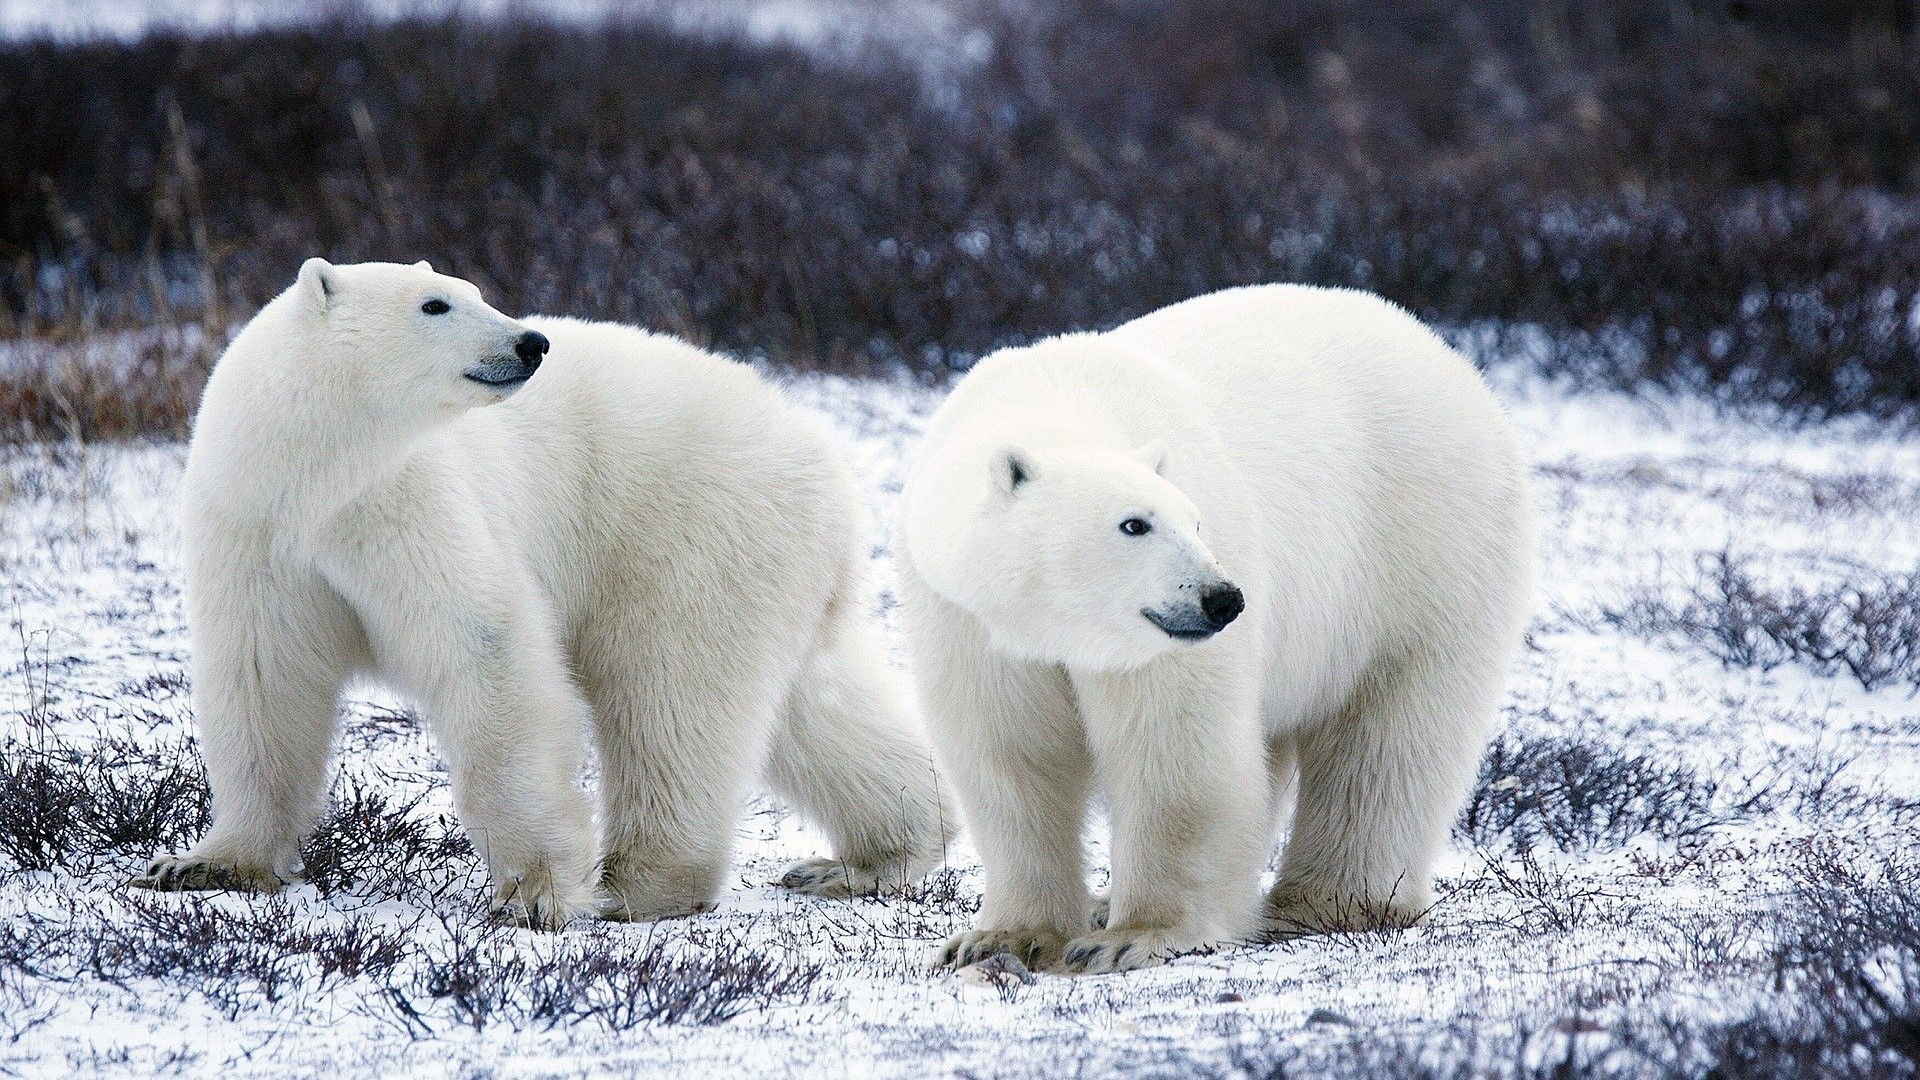 Image: Two polar bears